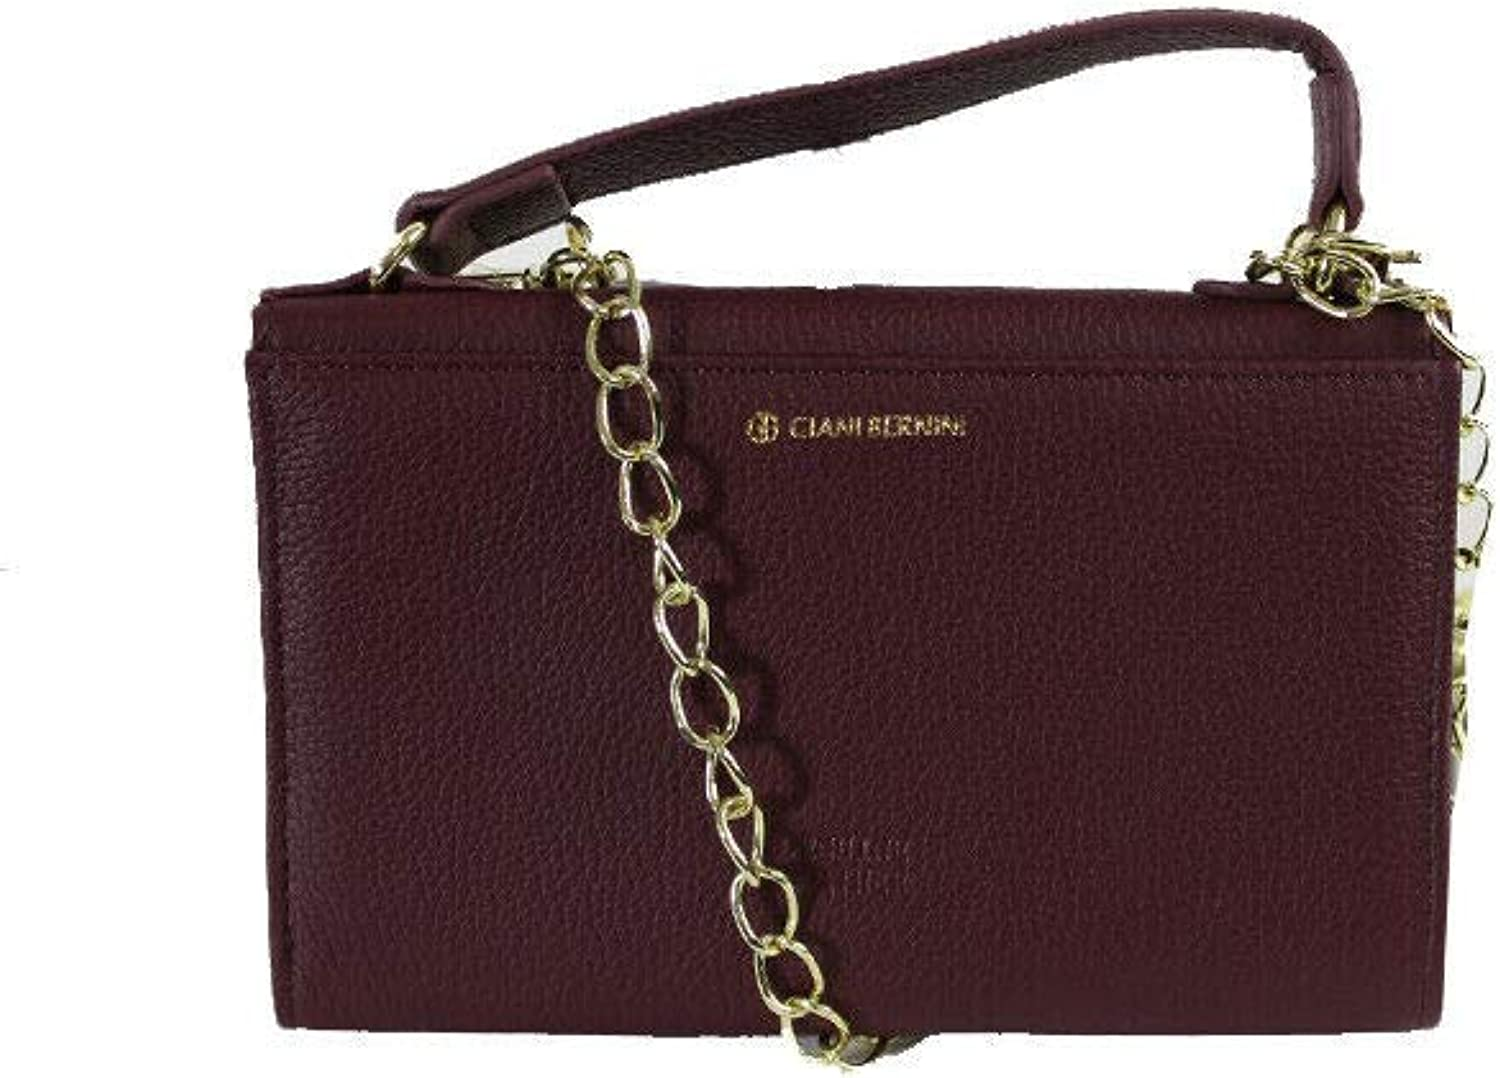 Giani Bernini Womens Softy Leather Smartphone Crossbody Handbag Red Small